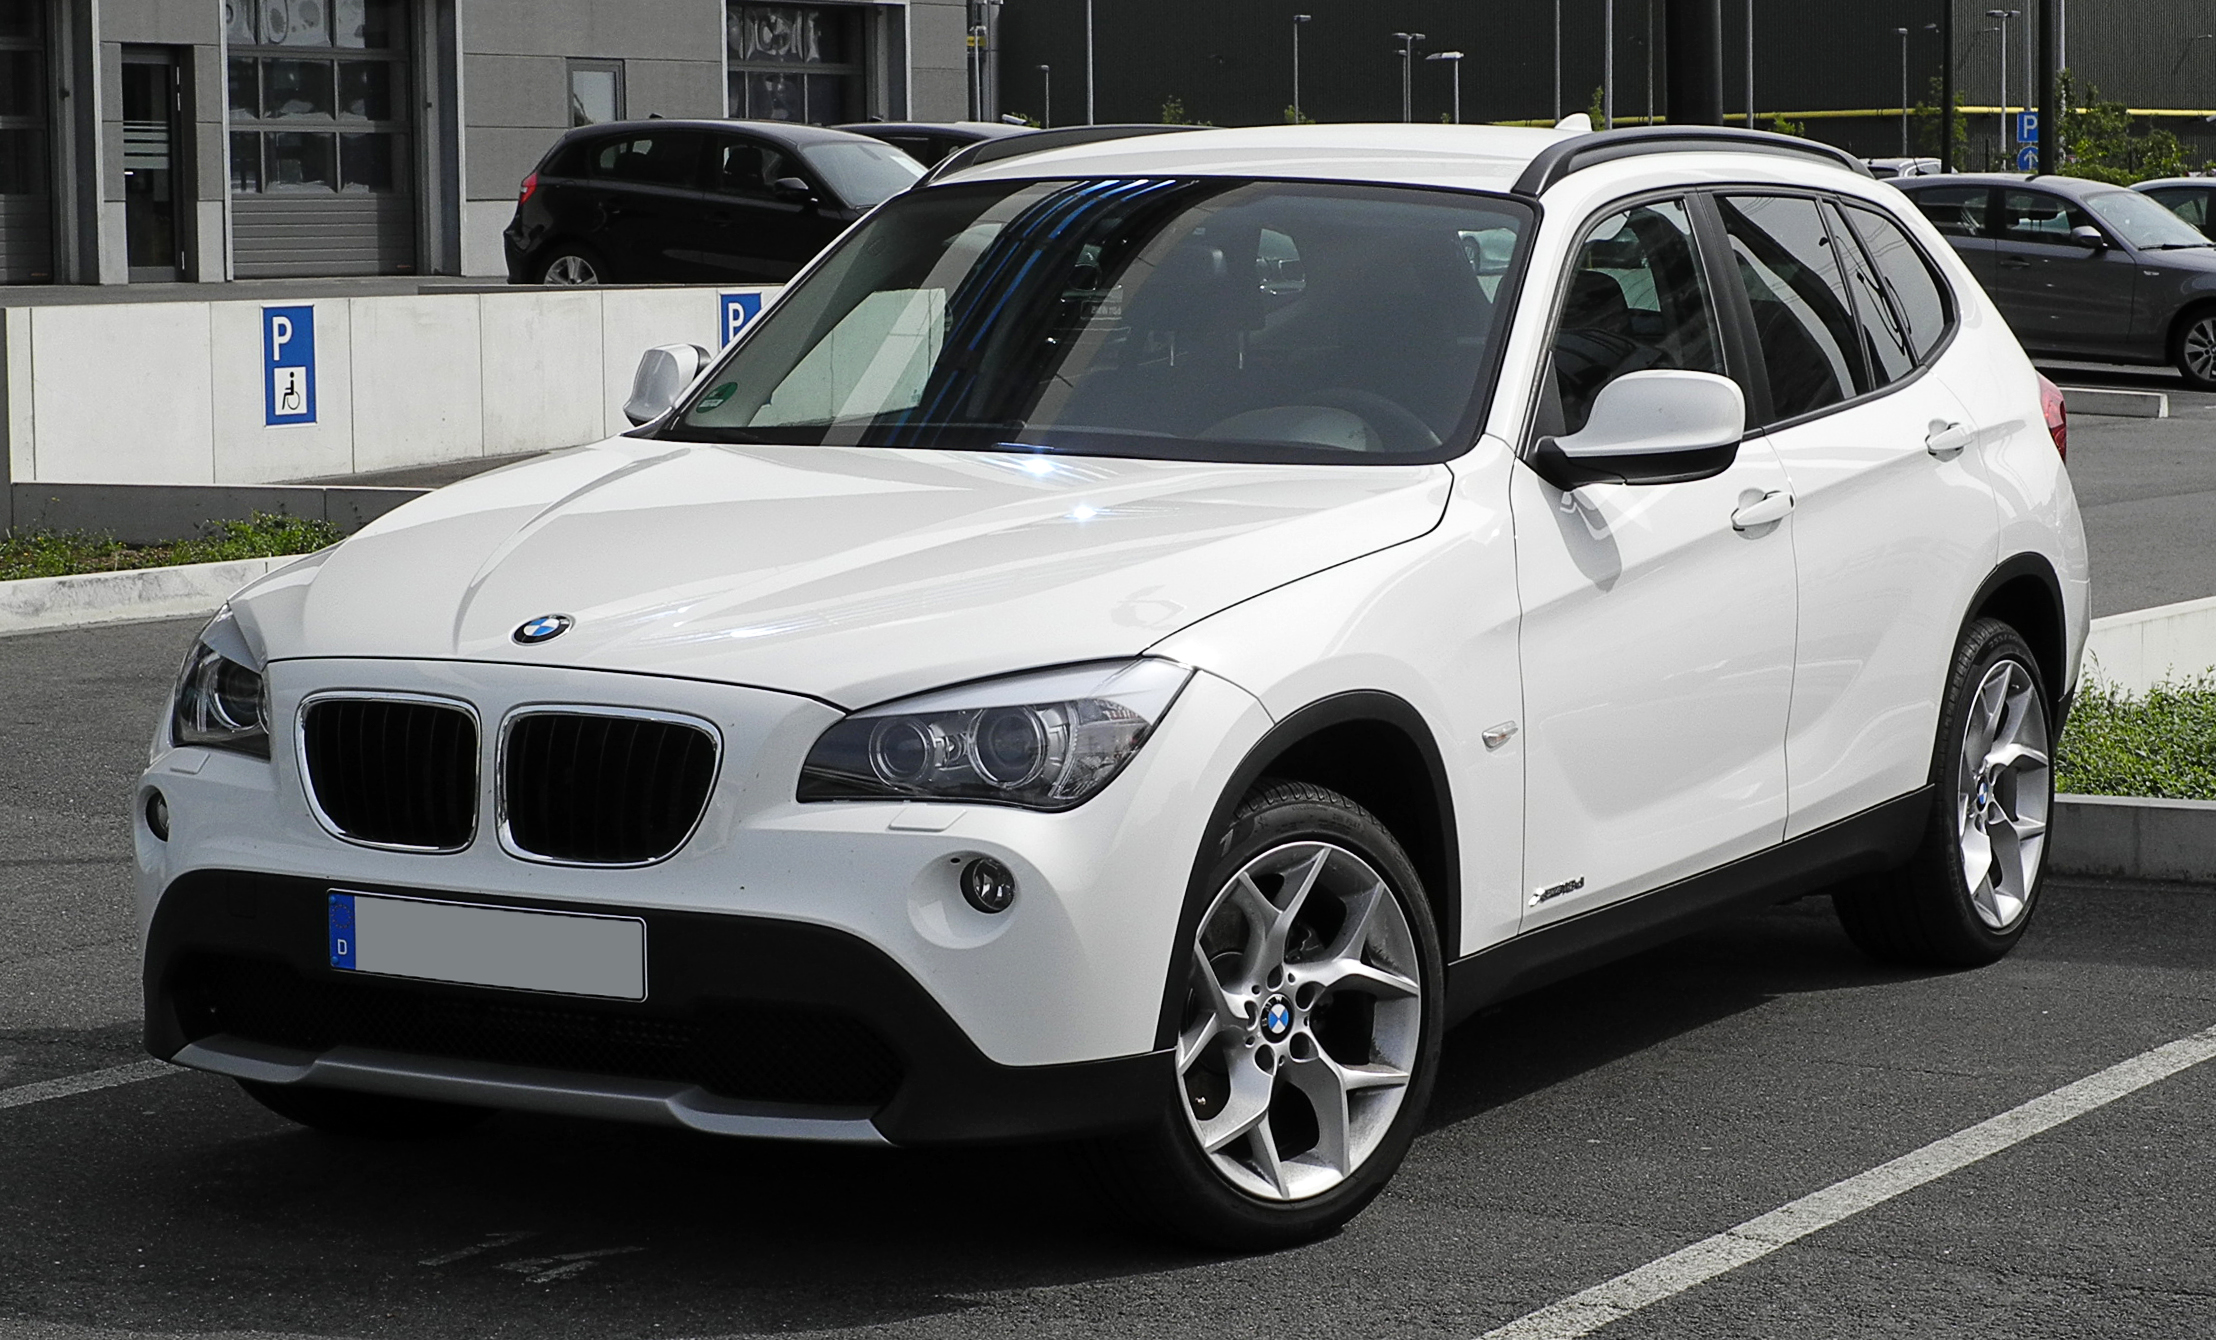 file bmw x1 xdrive18d e84 frontansicht 12 juni 2011 d wikimedia commons. Black Bedroom Furniture Sets. Home Design Ideas